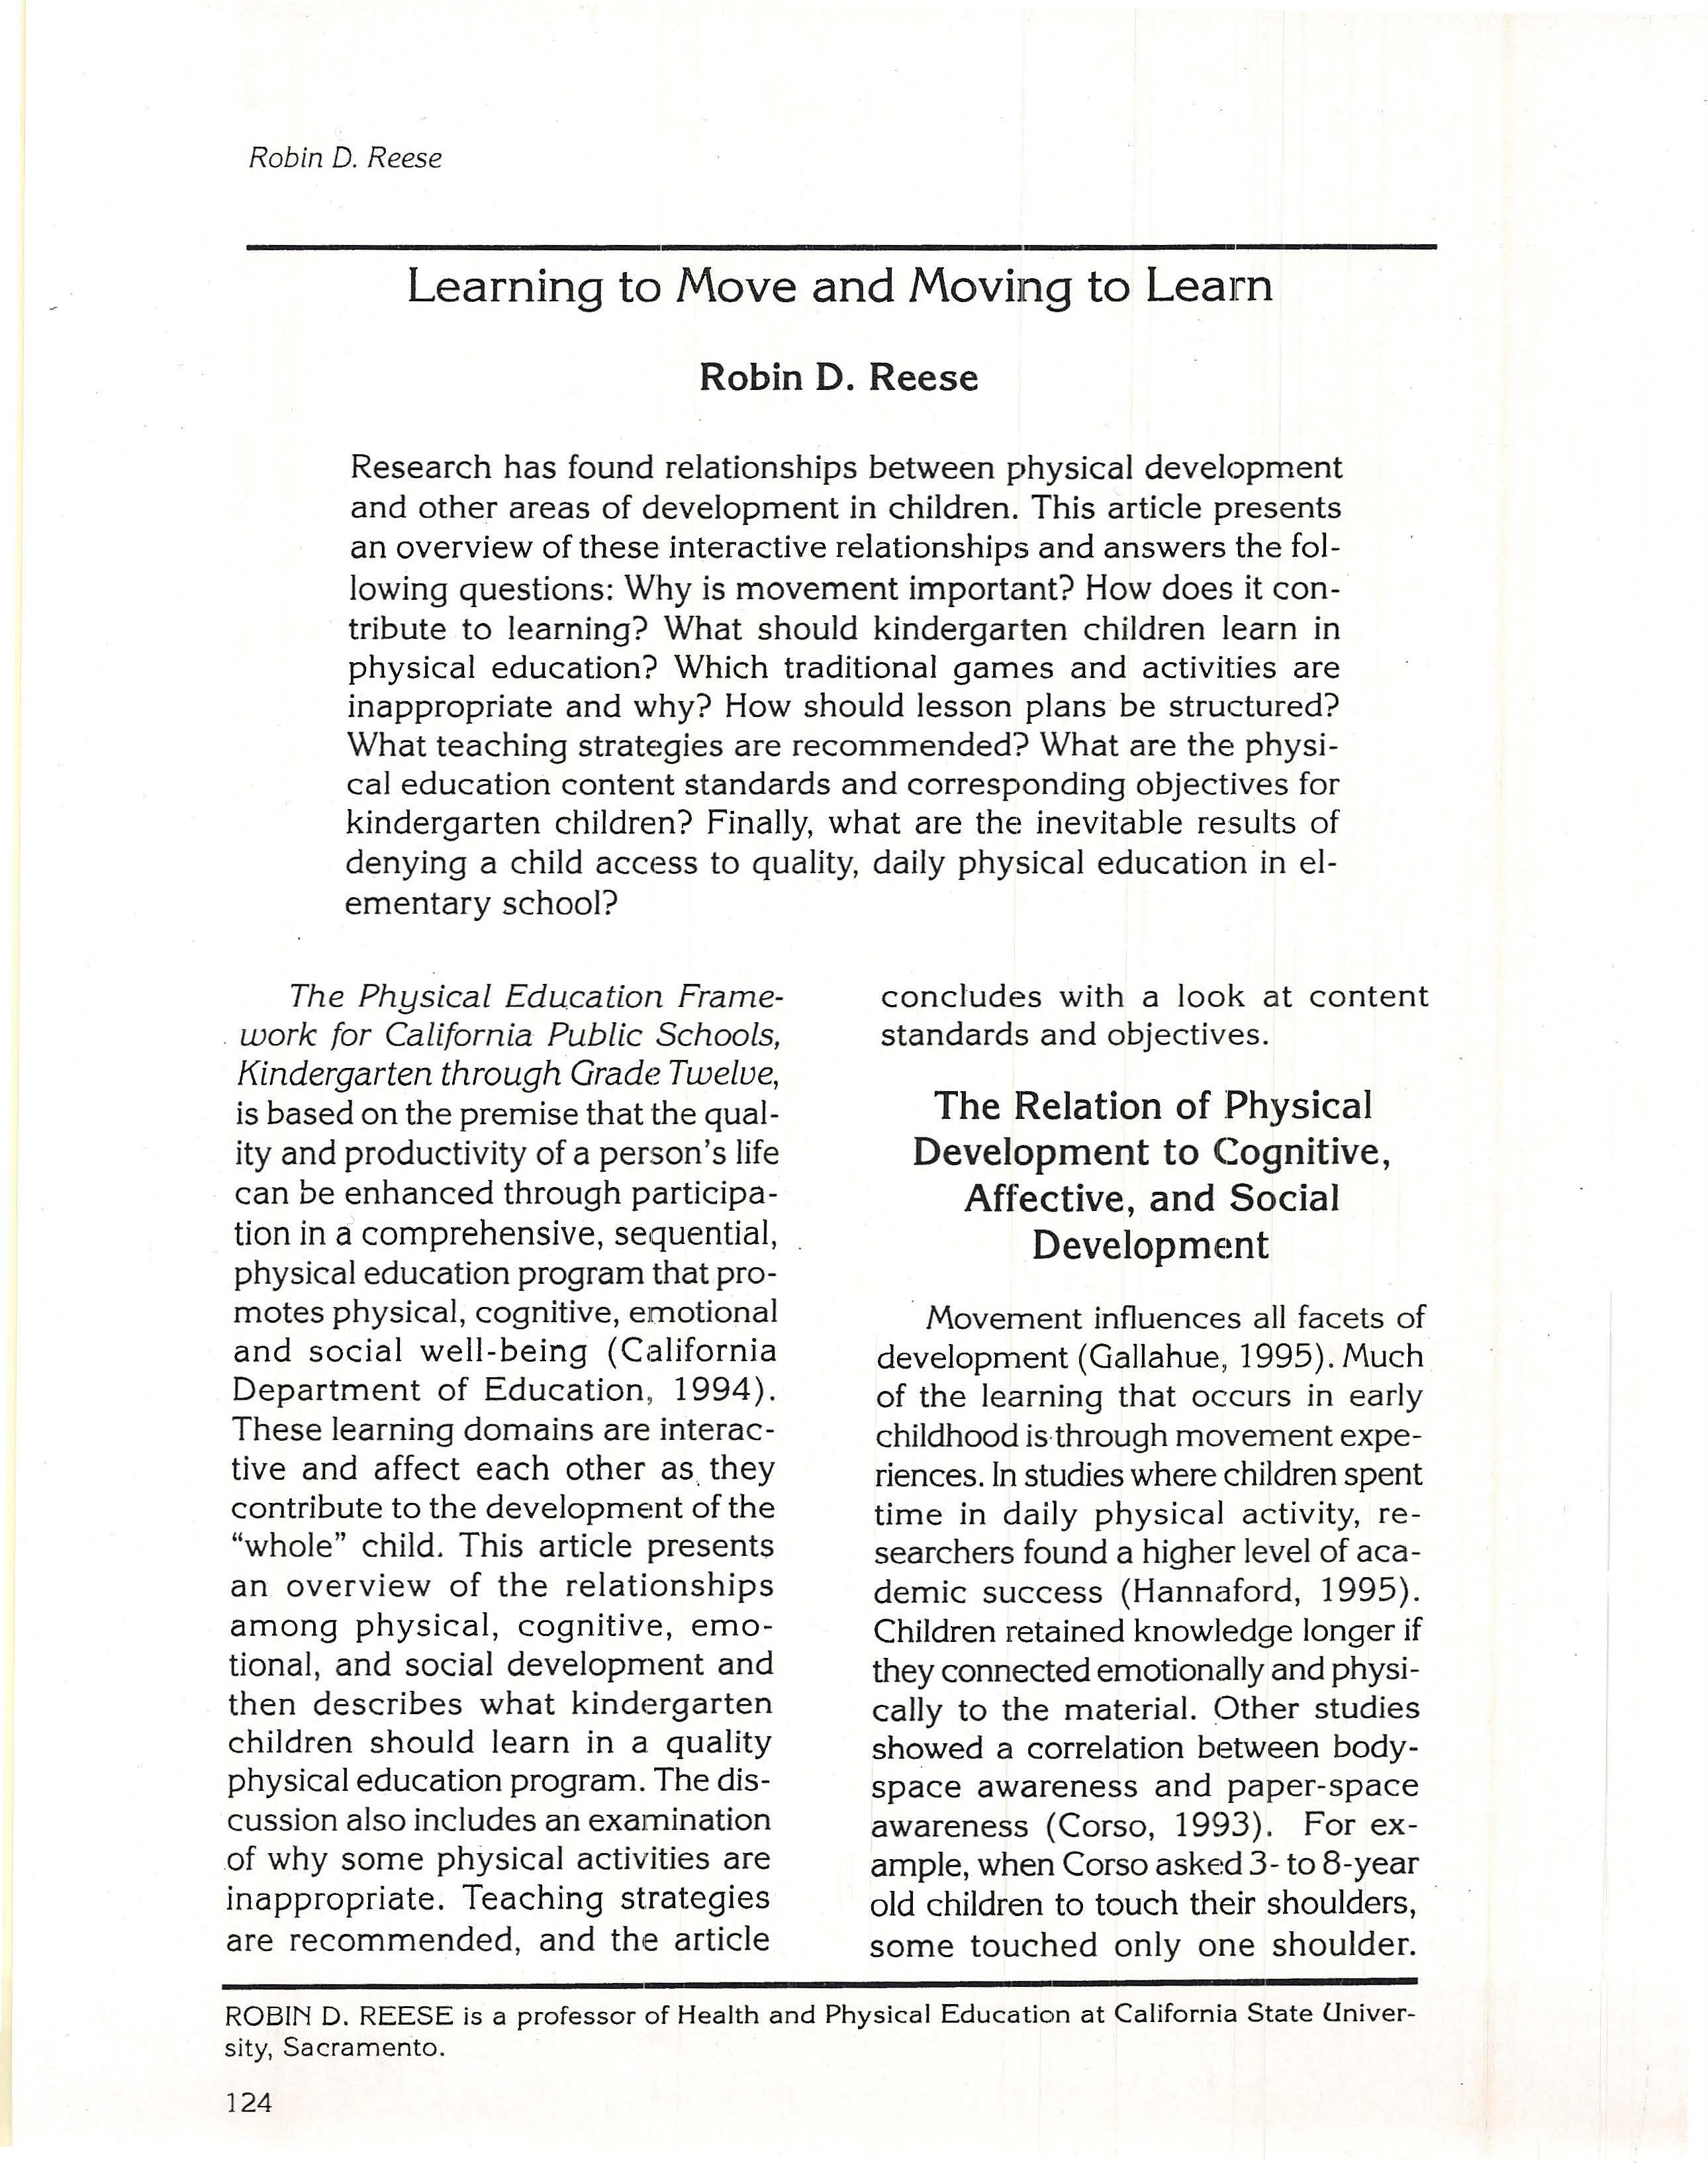 Learning to Move and Moving to Learn, Robin D. Reese